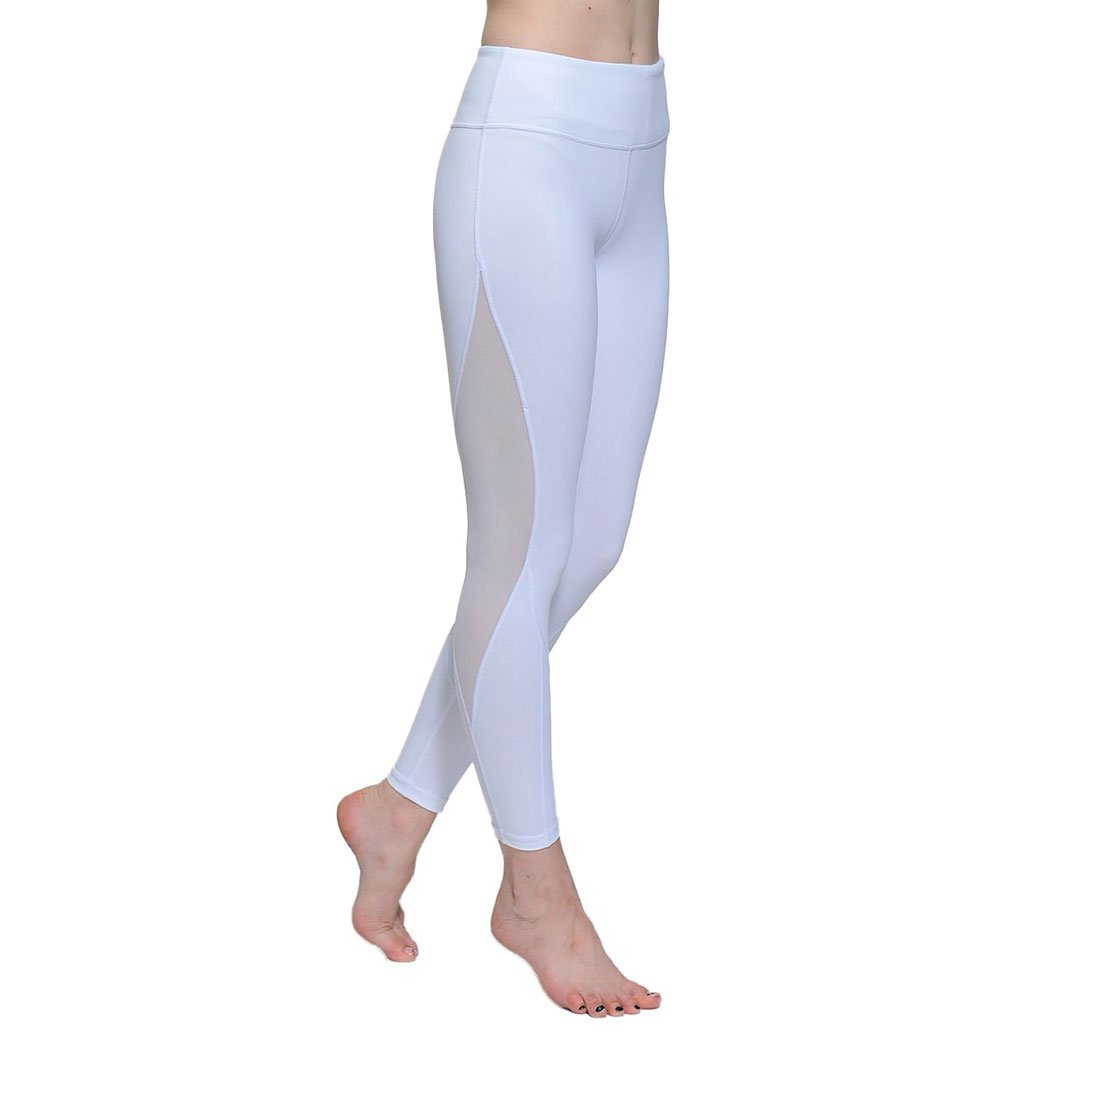 Chikool Women White Mesh Yoga Pants Athletic Workout Capri Leggings with Side Pocket by Chikool